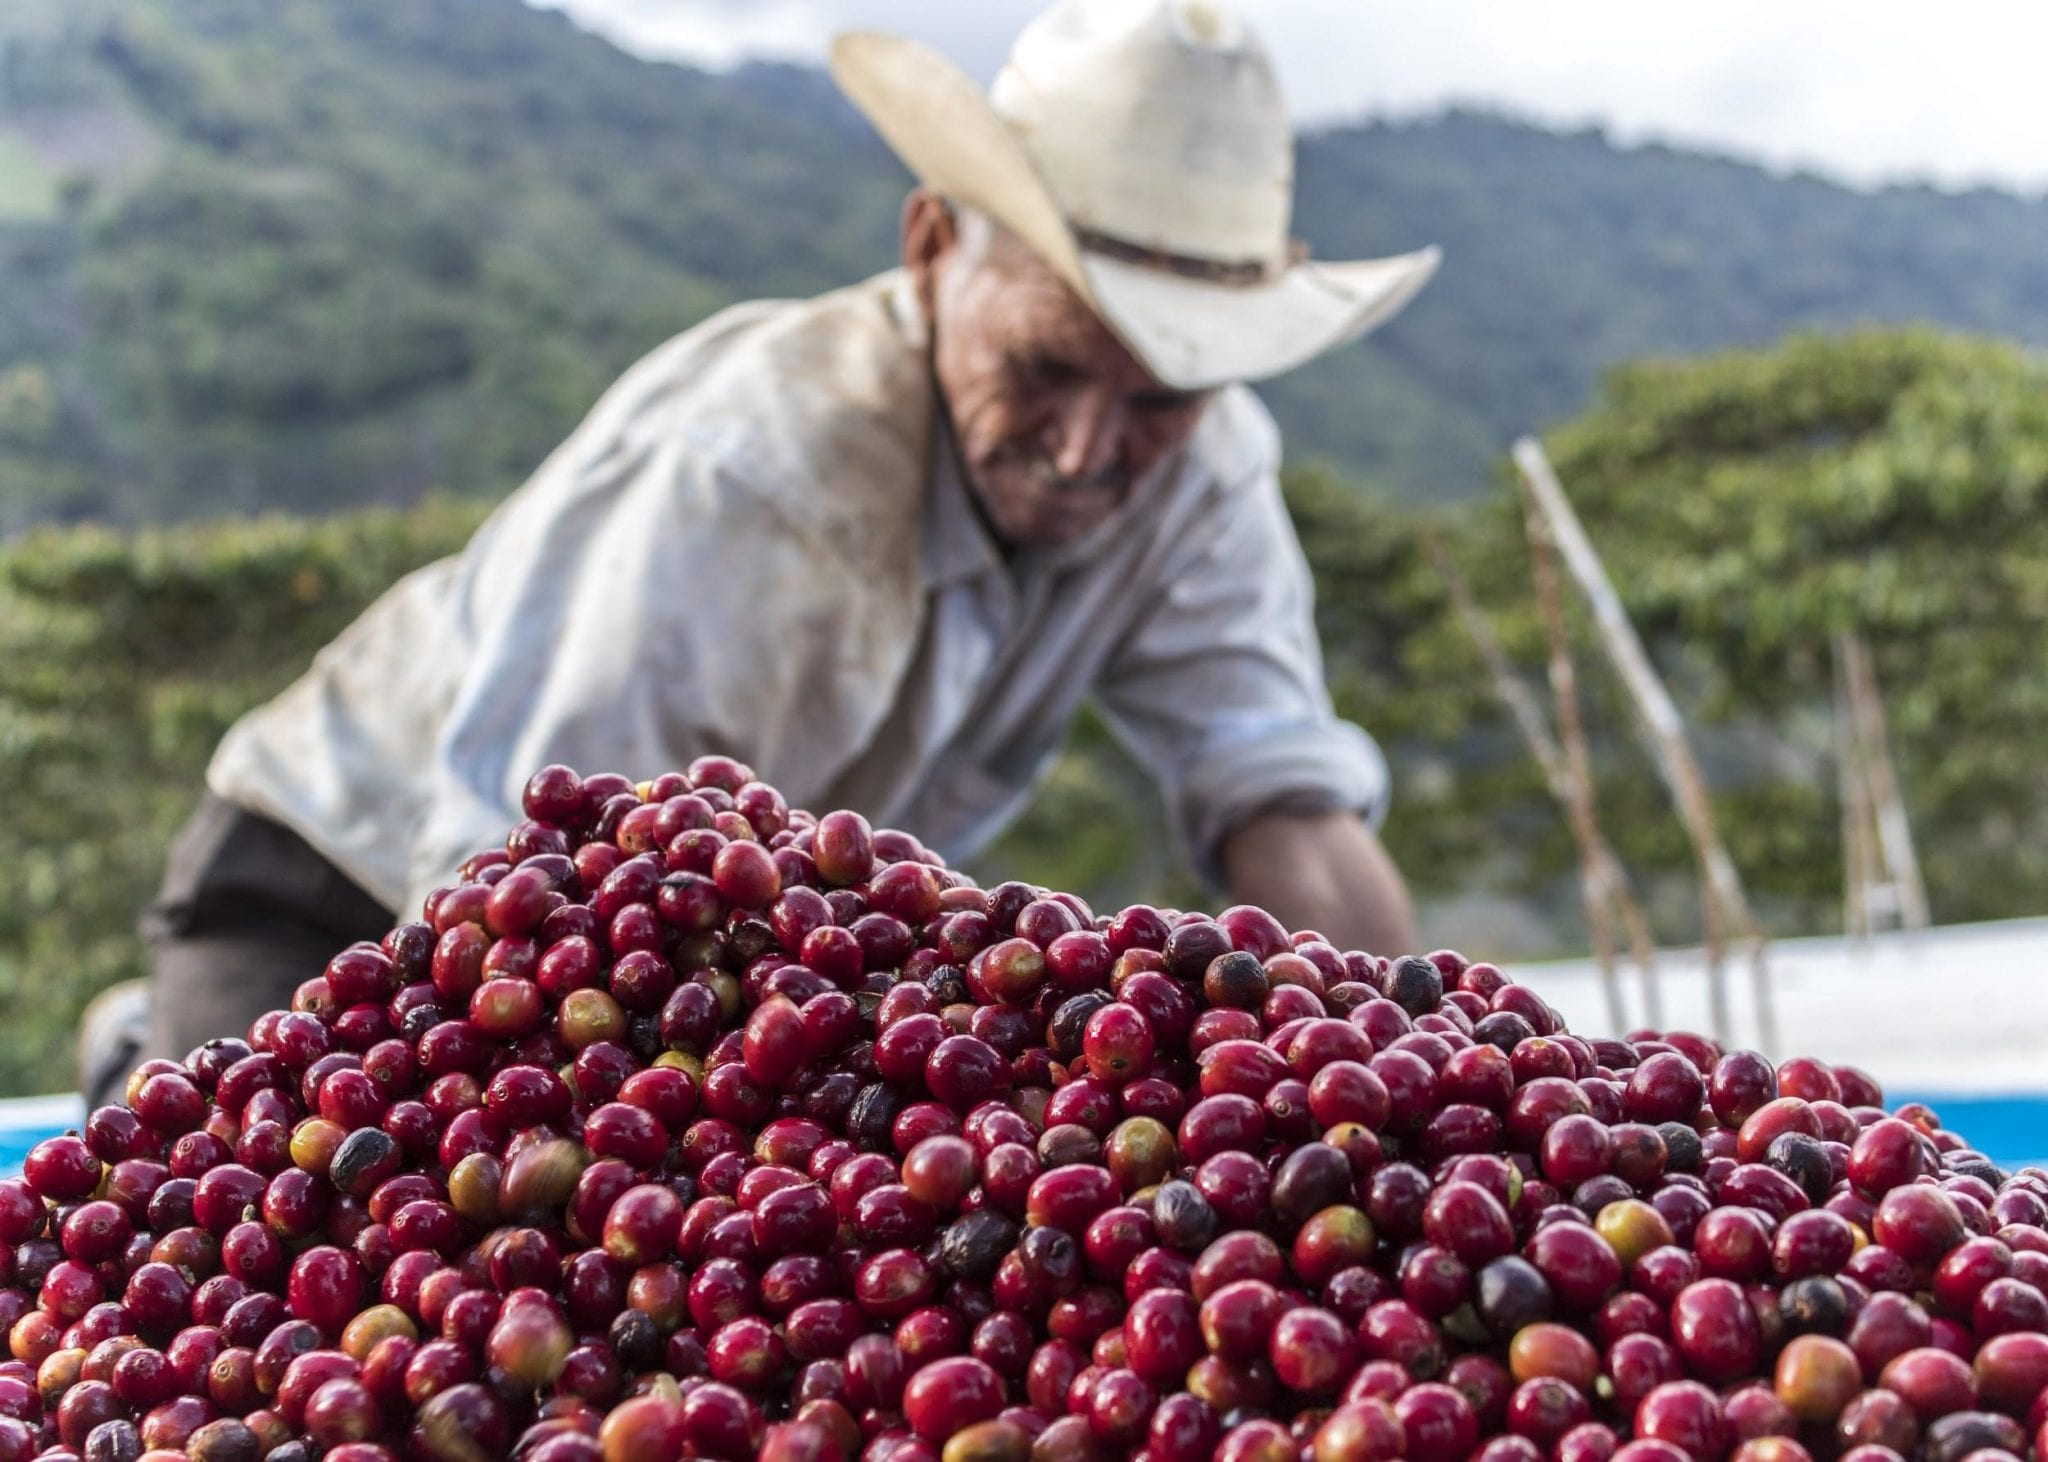 a pile of coffee cherries being sorted by a farmer